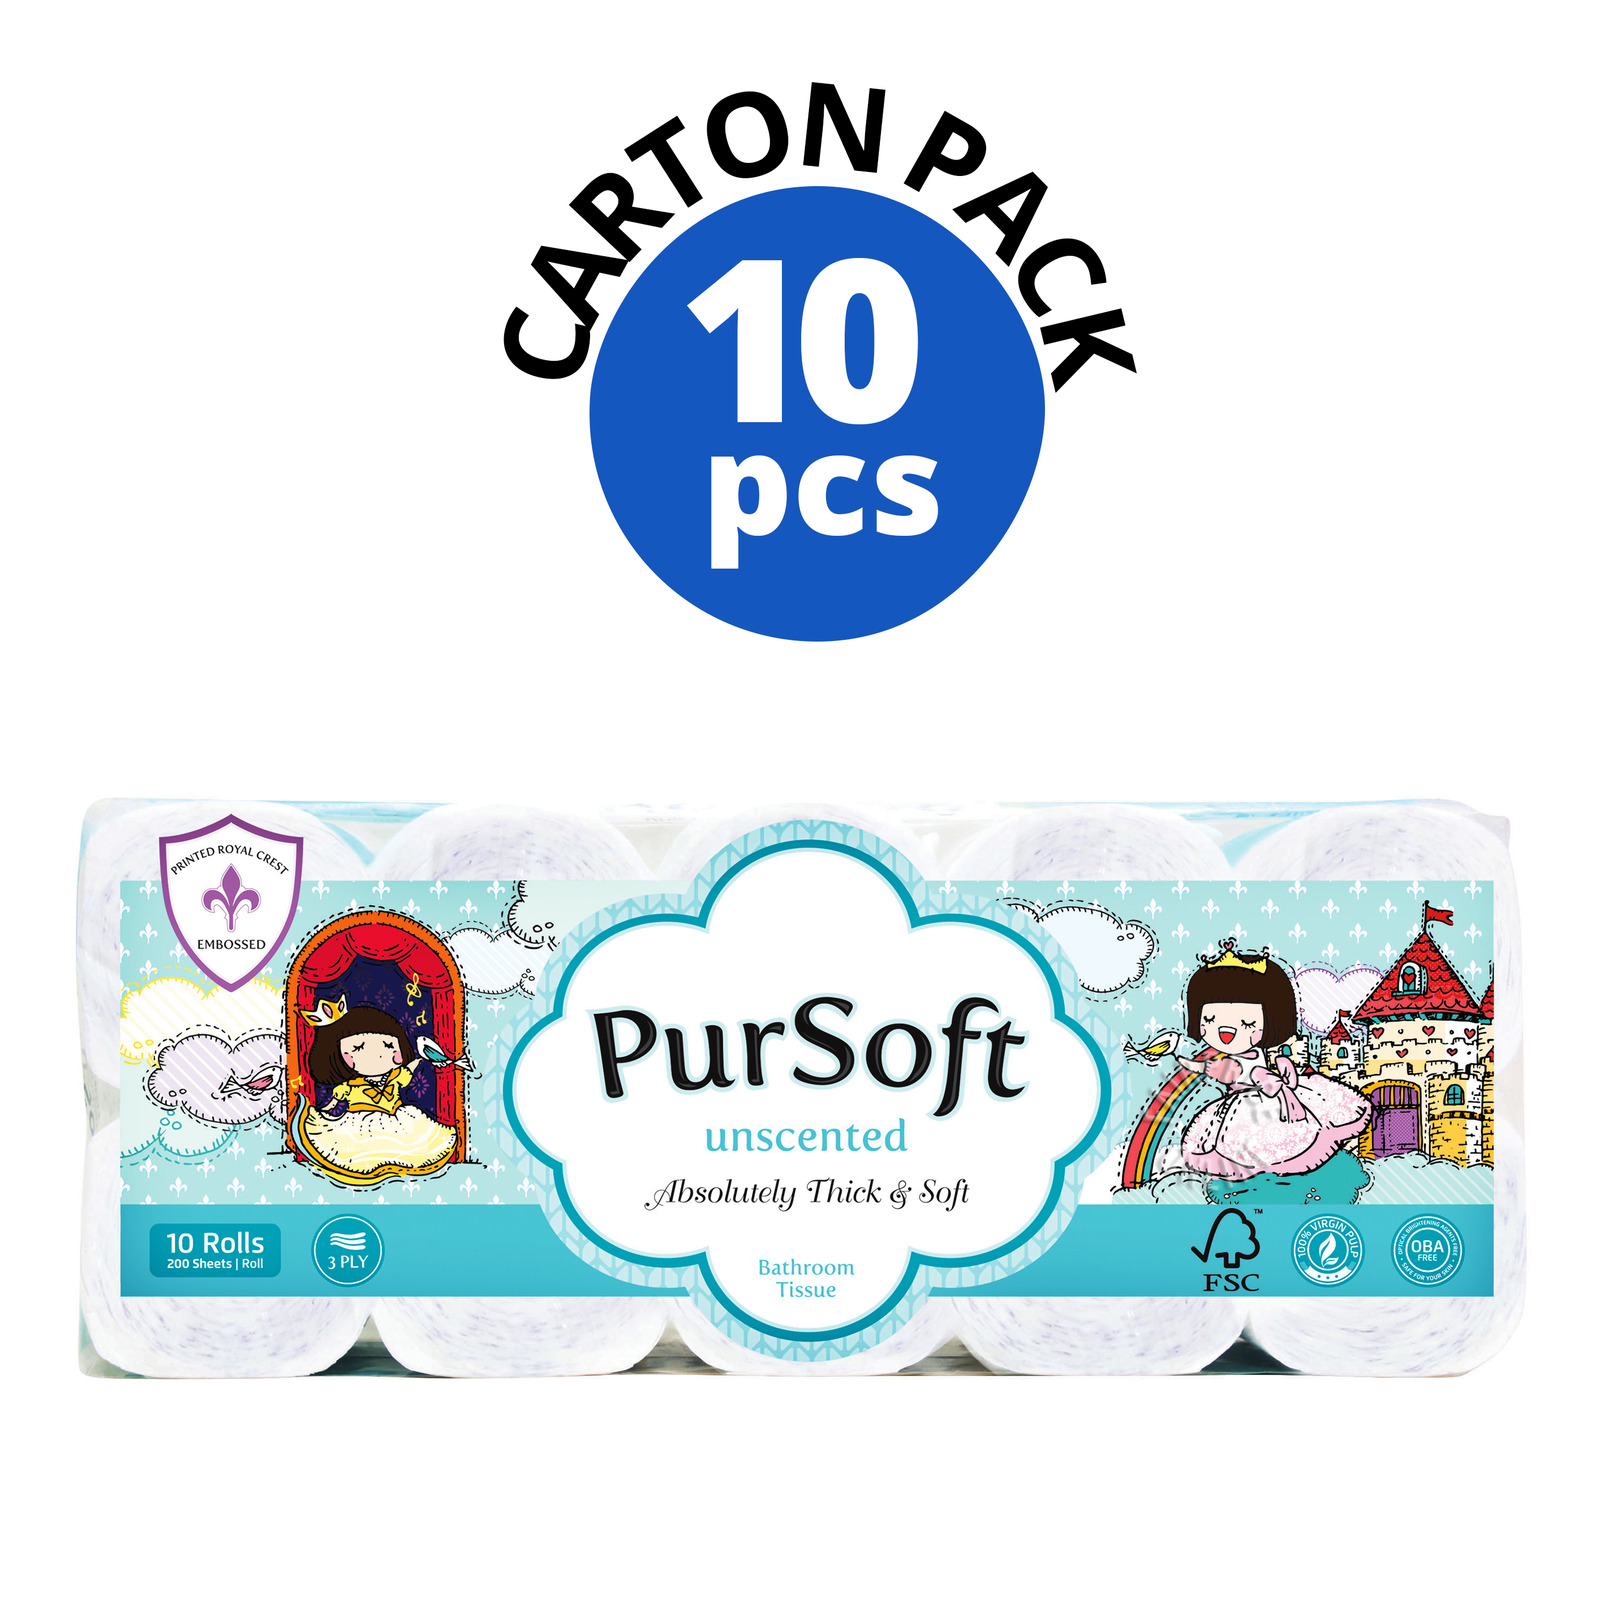 Pursoft Bathroom Tissue Roll - Unscented(3ply)